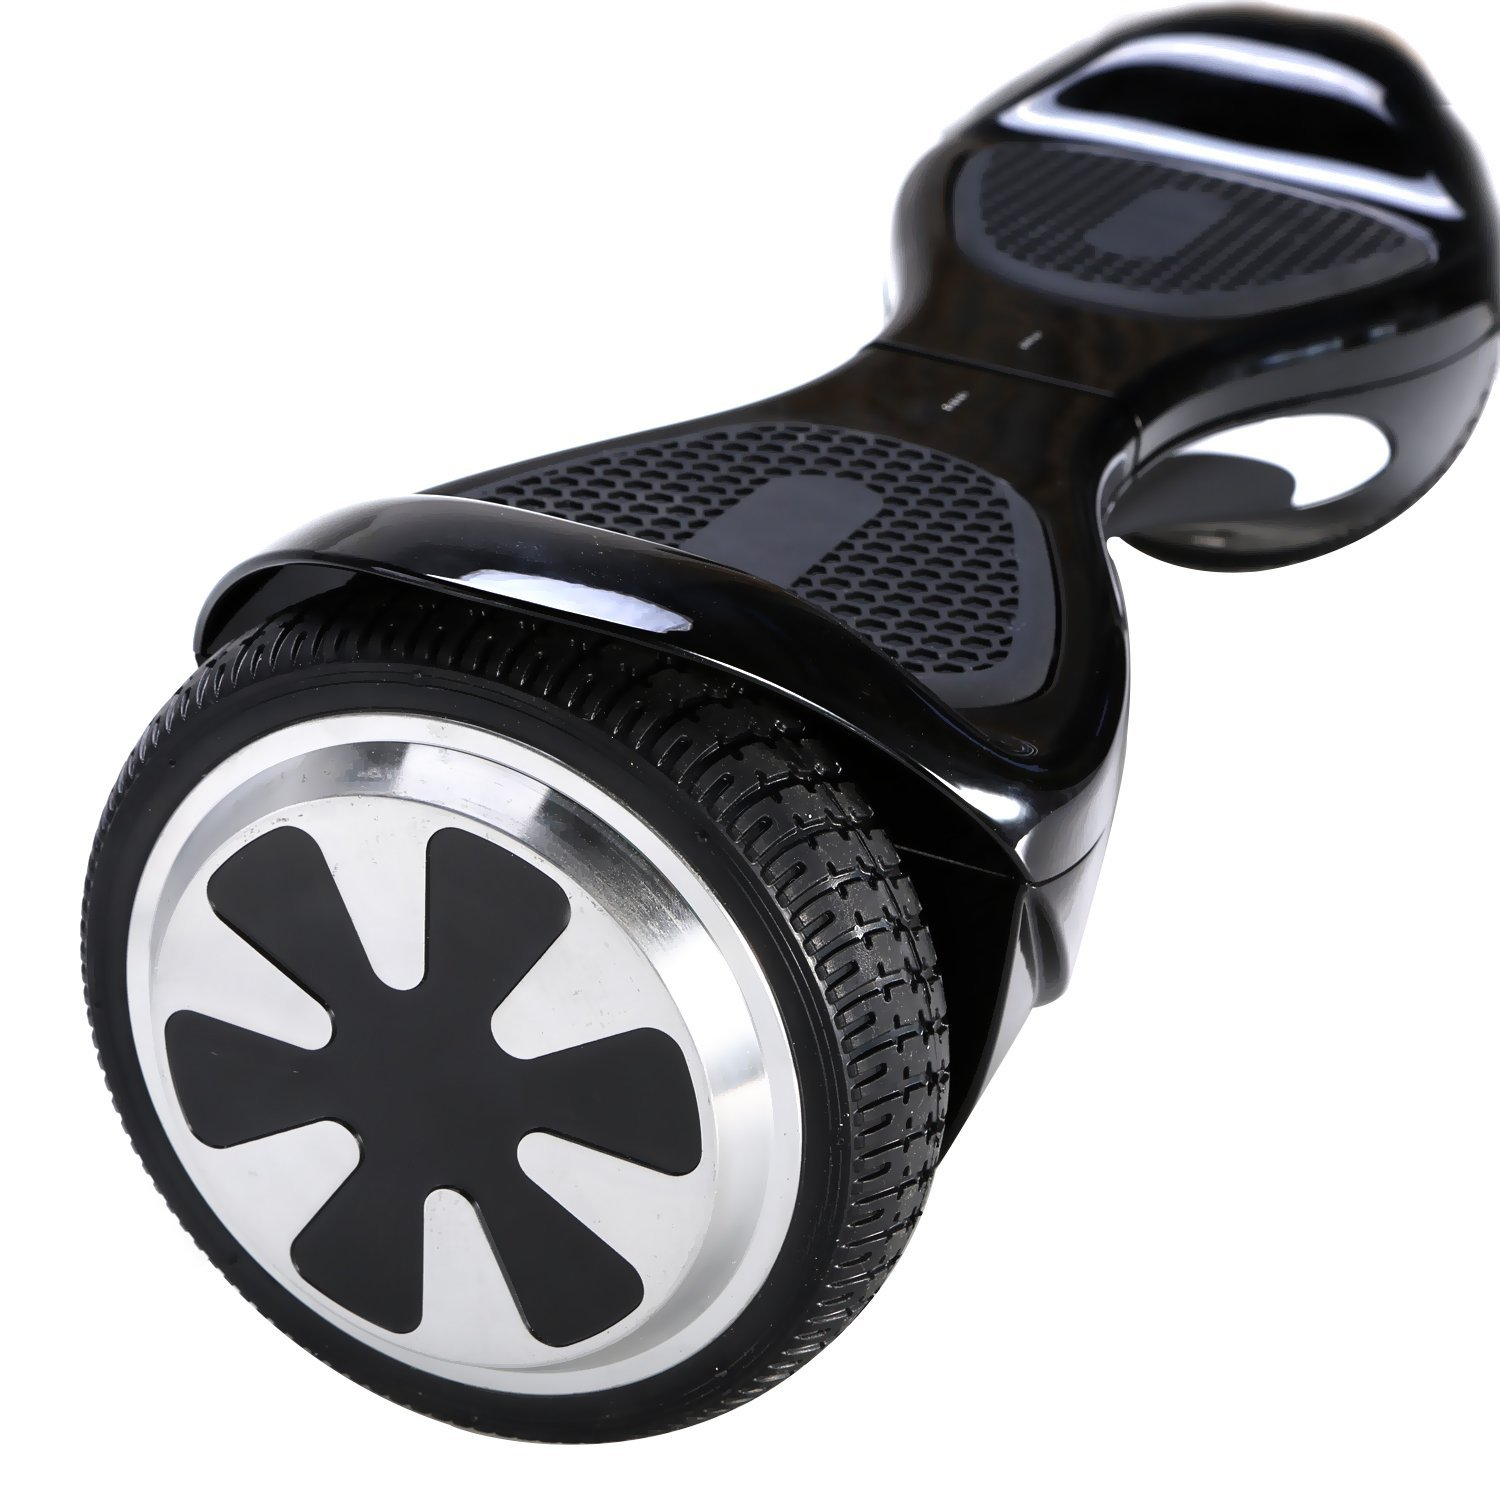 Once again Amazon removes hoverboards due to UL safety concerns